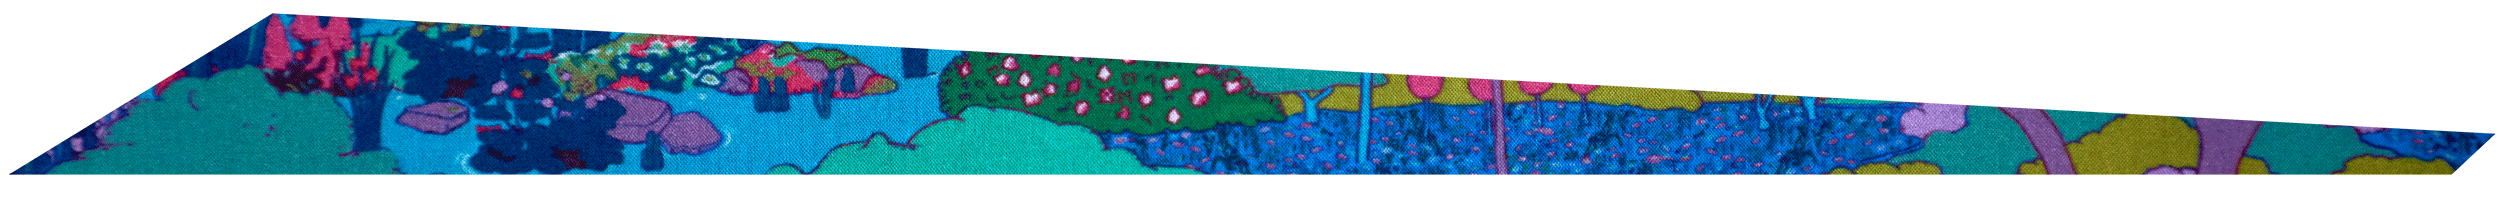 teal_purple_turquoise_fabric1.png